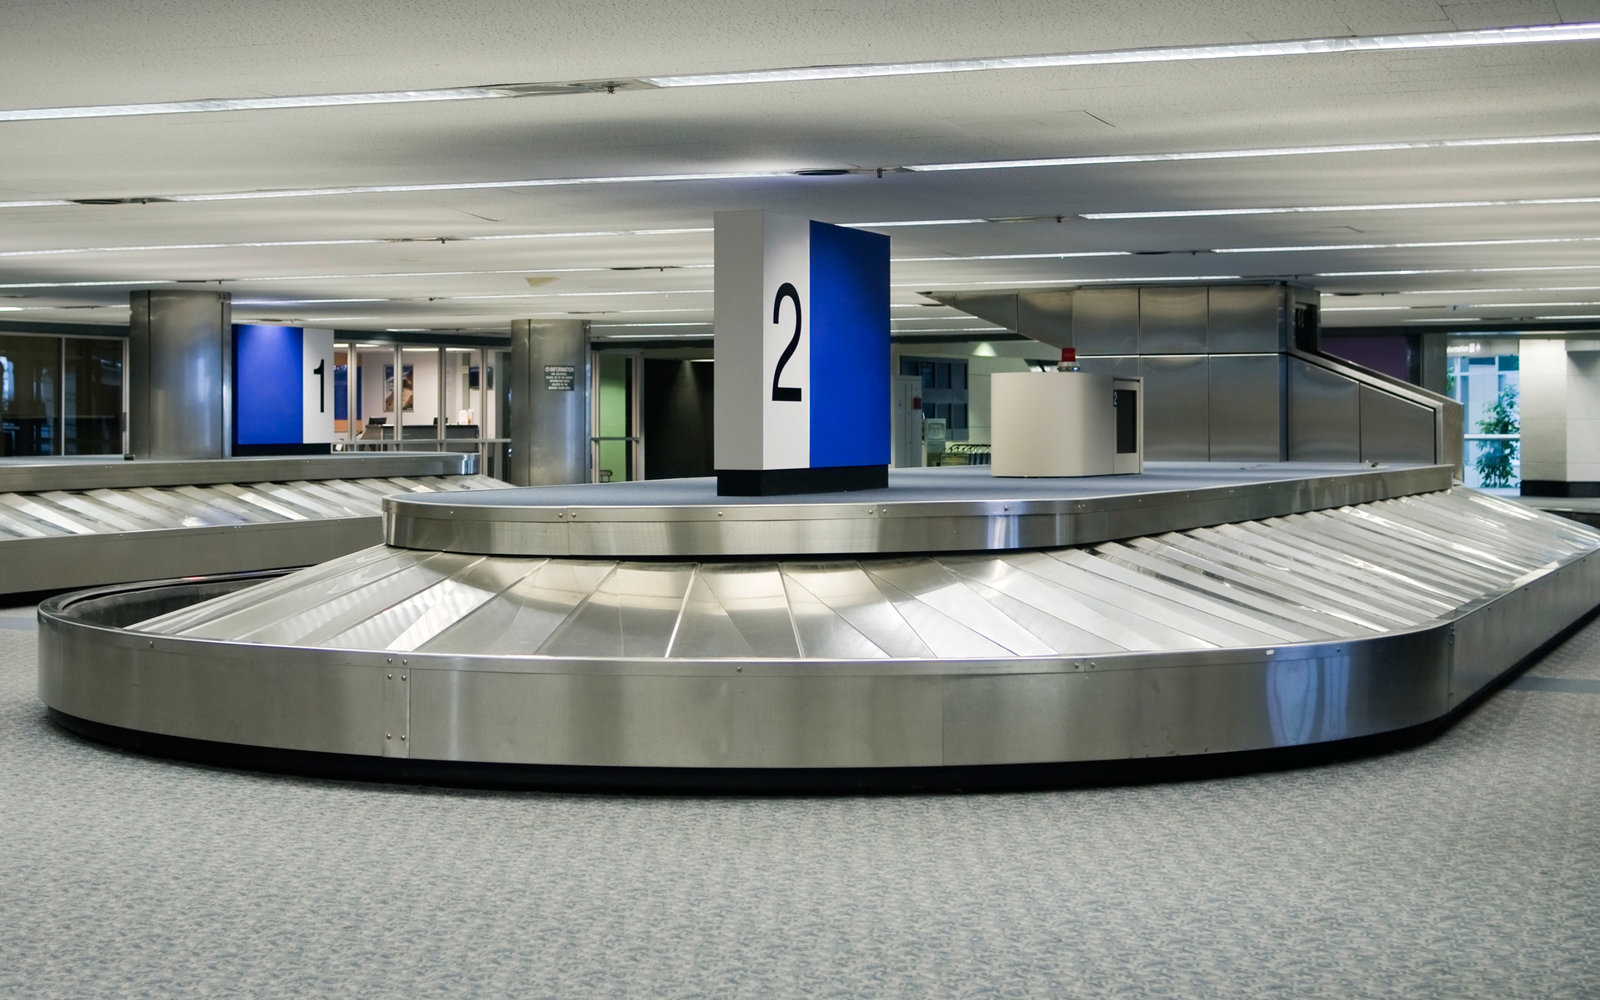 Baggage Claim Explained